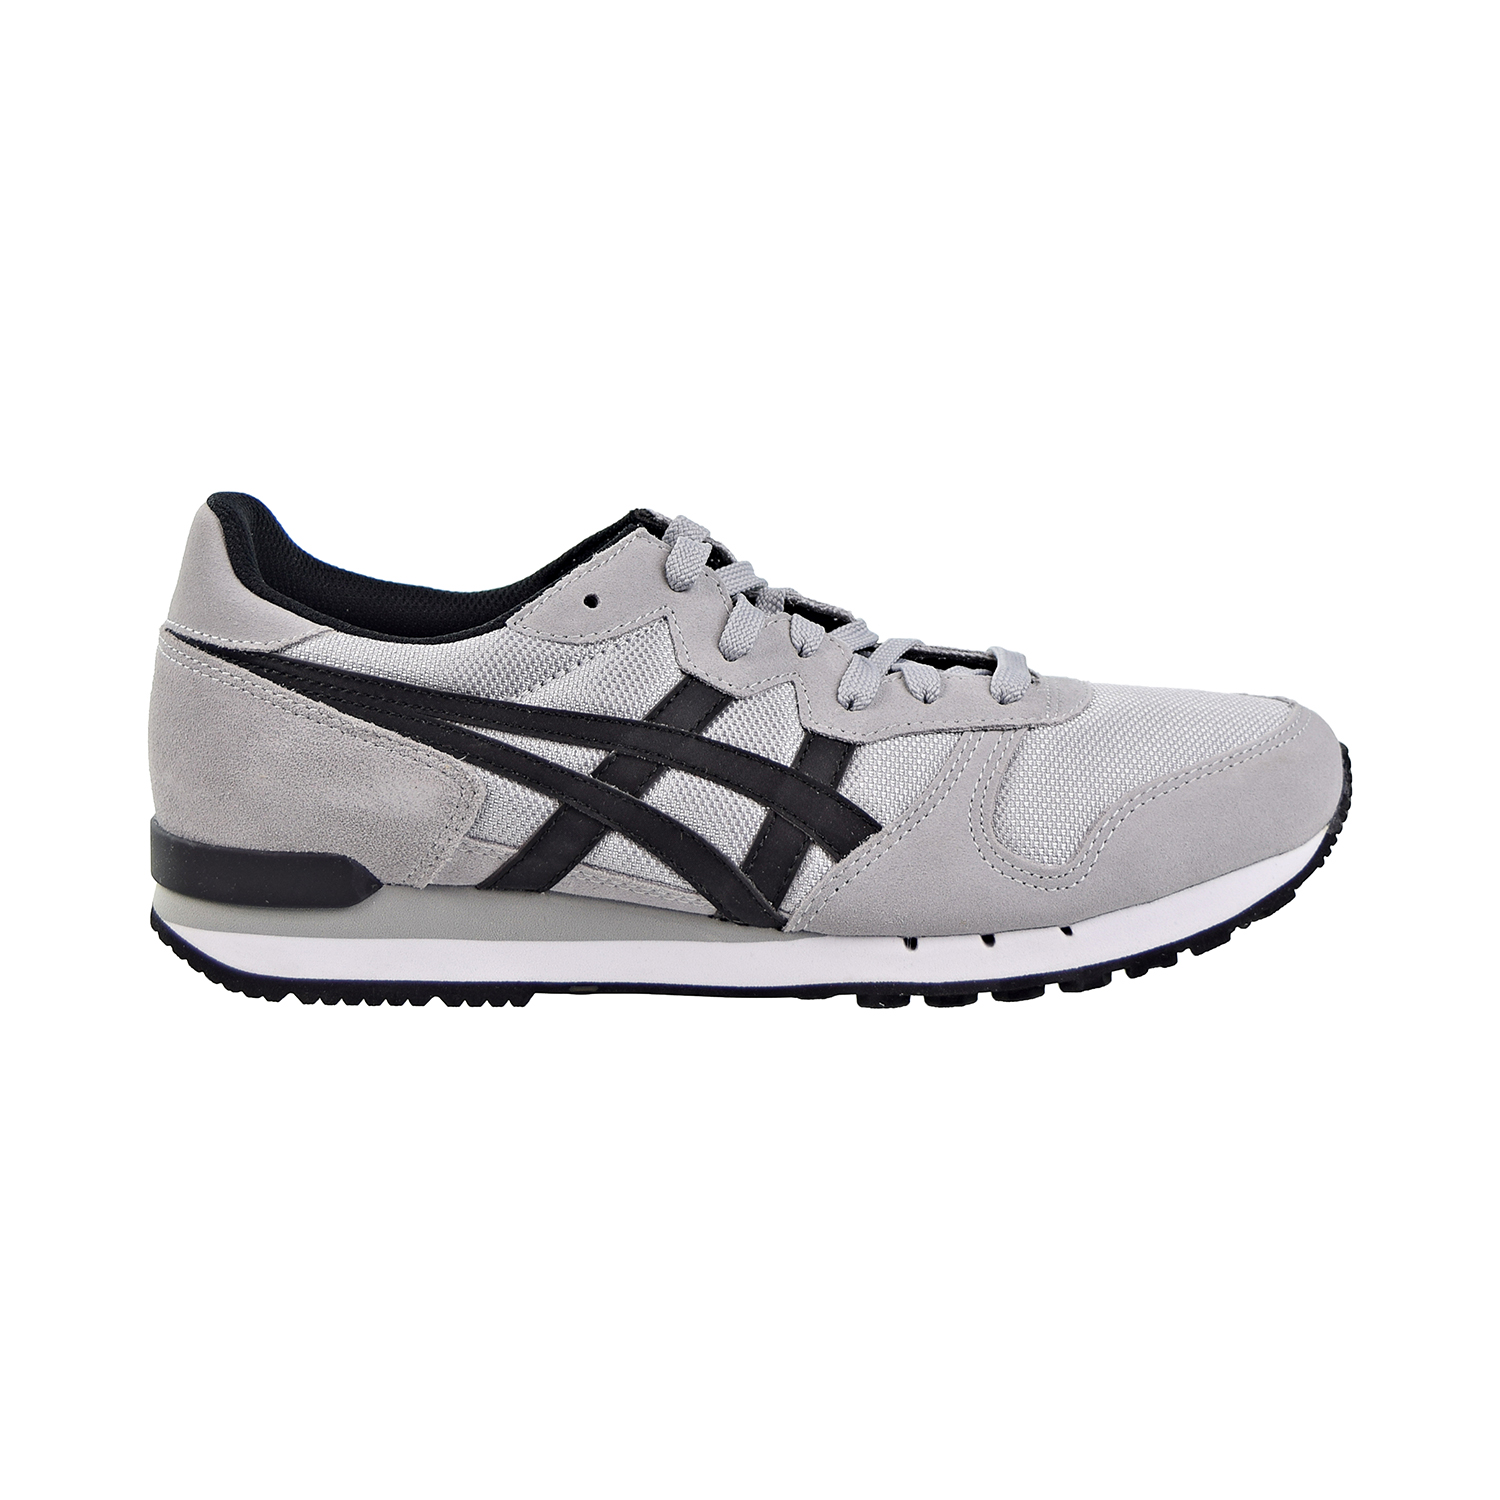 Asics Onitsuka Tiger Alvarado D6C4N United Mens Shoes Sneakers Sz 11.5 Mid Gray | eBay